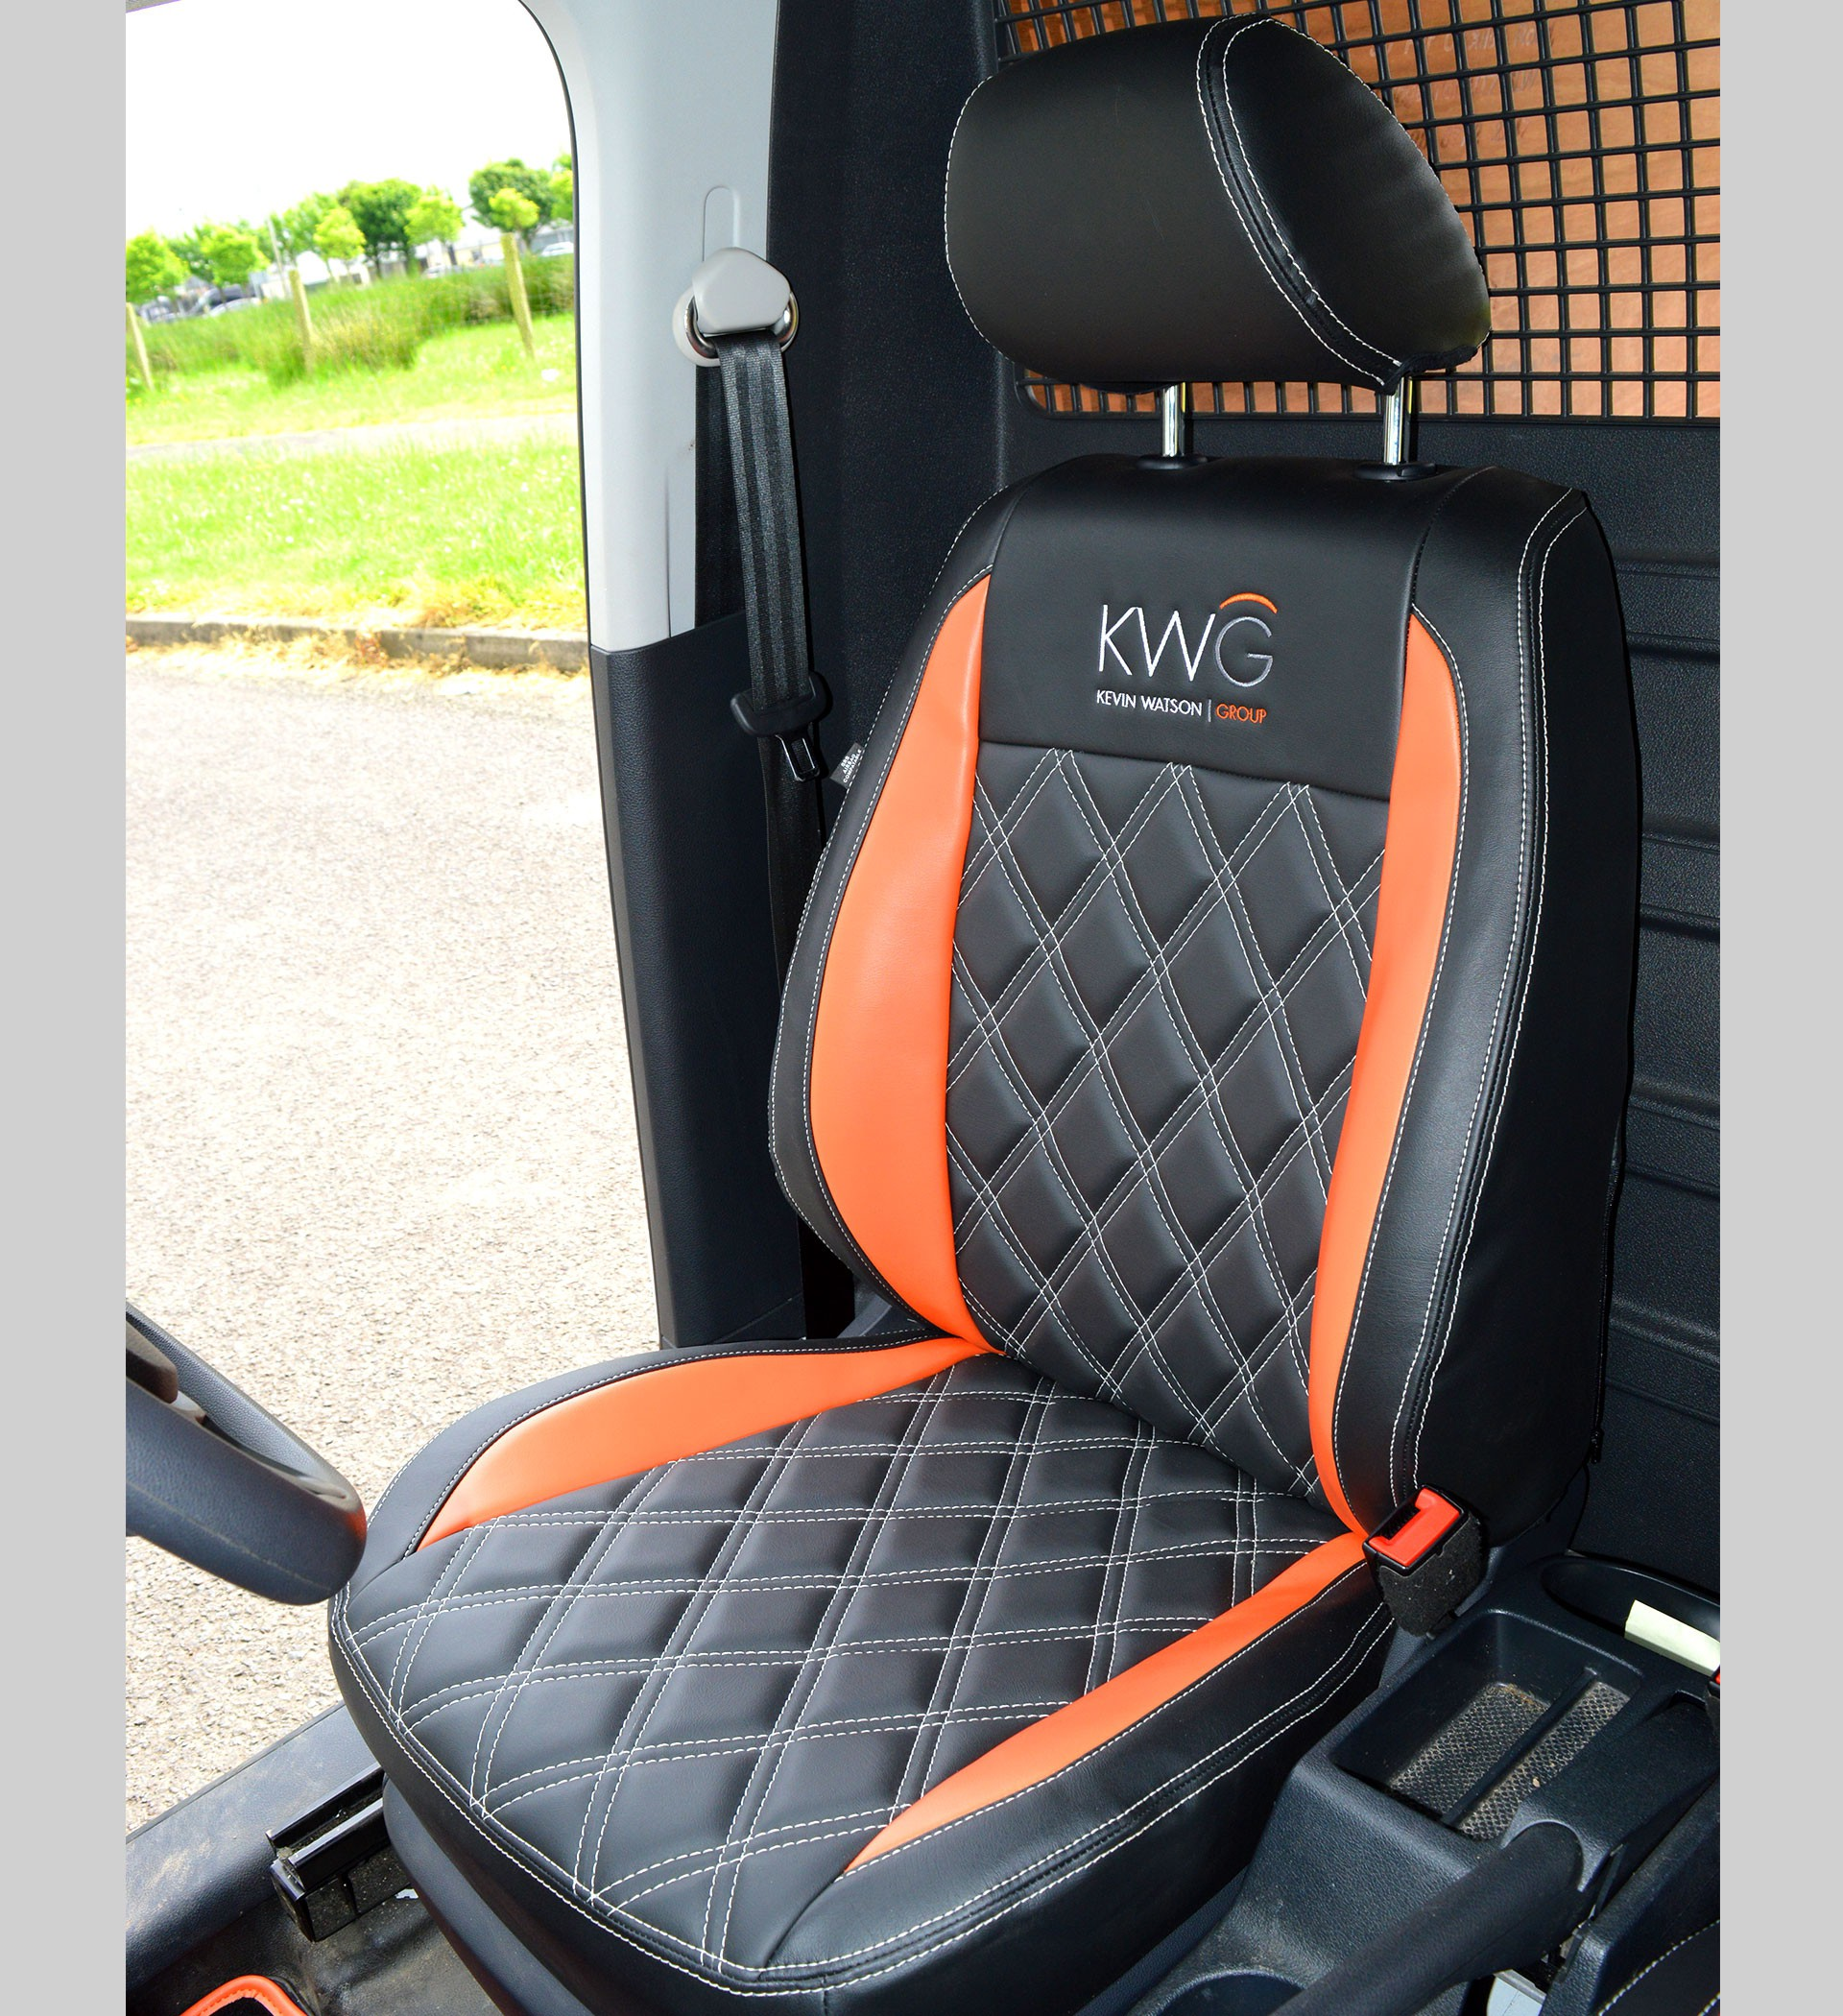 Volkswagen VW Caddy Tailored Van Seat Covers - Black & Orange Inserts